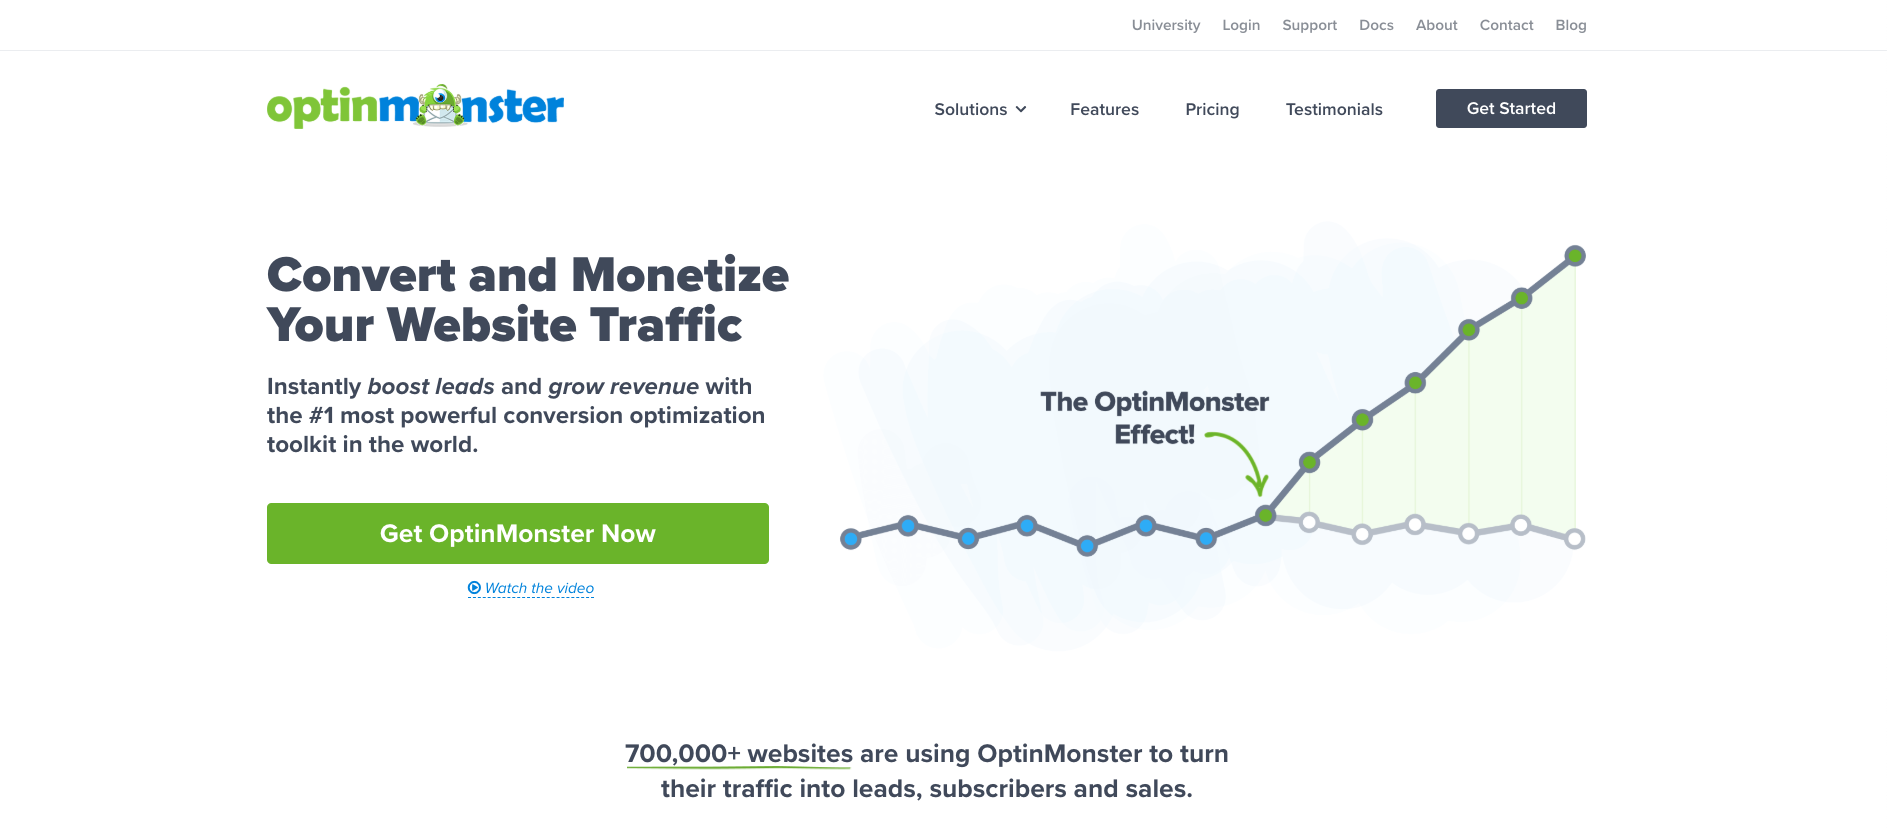 optinmonster conversion rate app